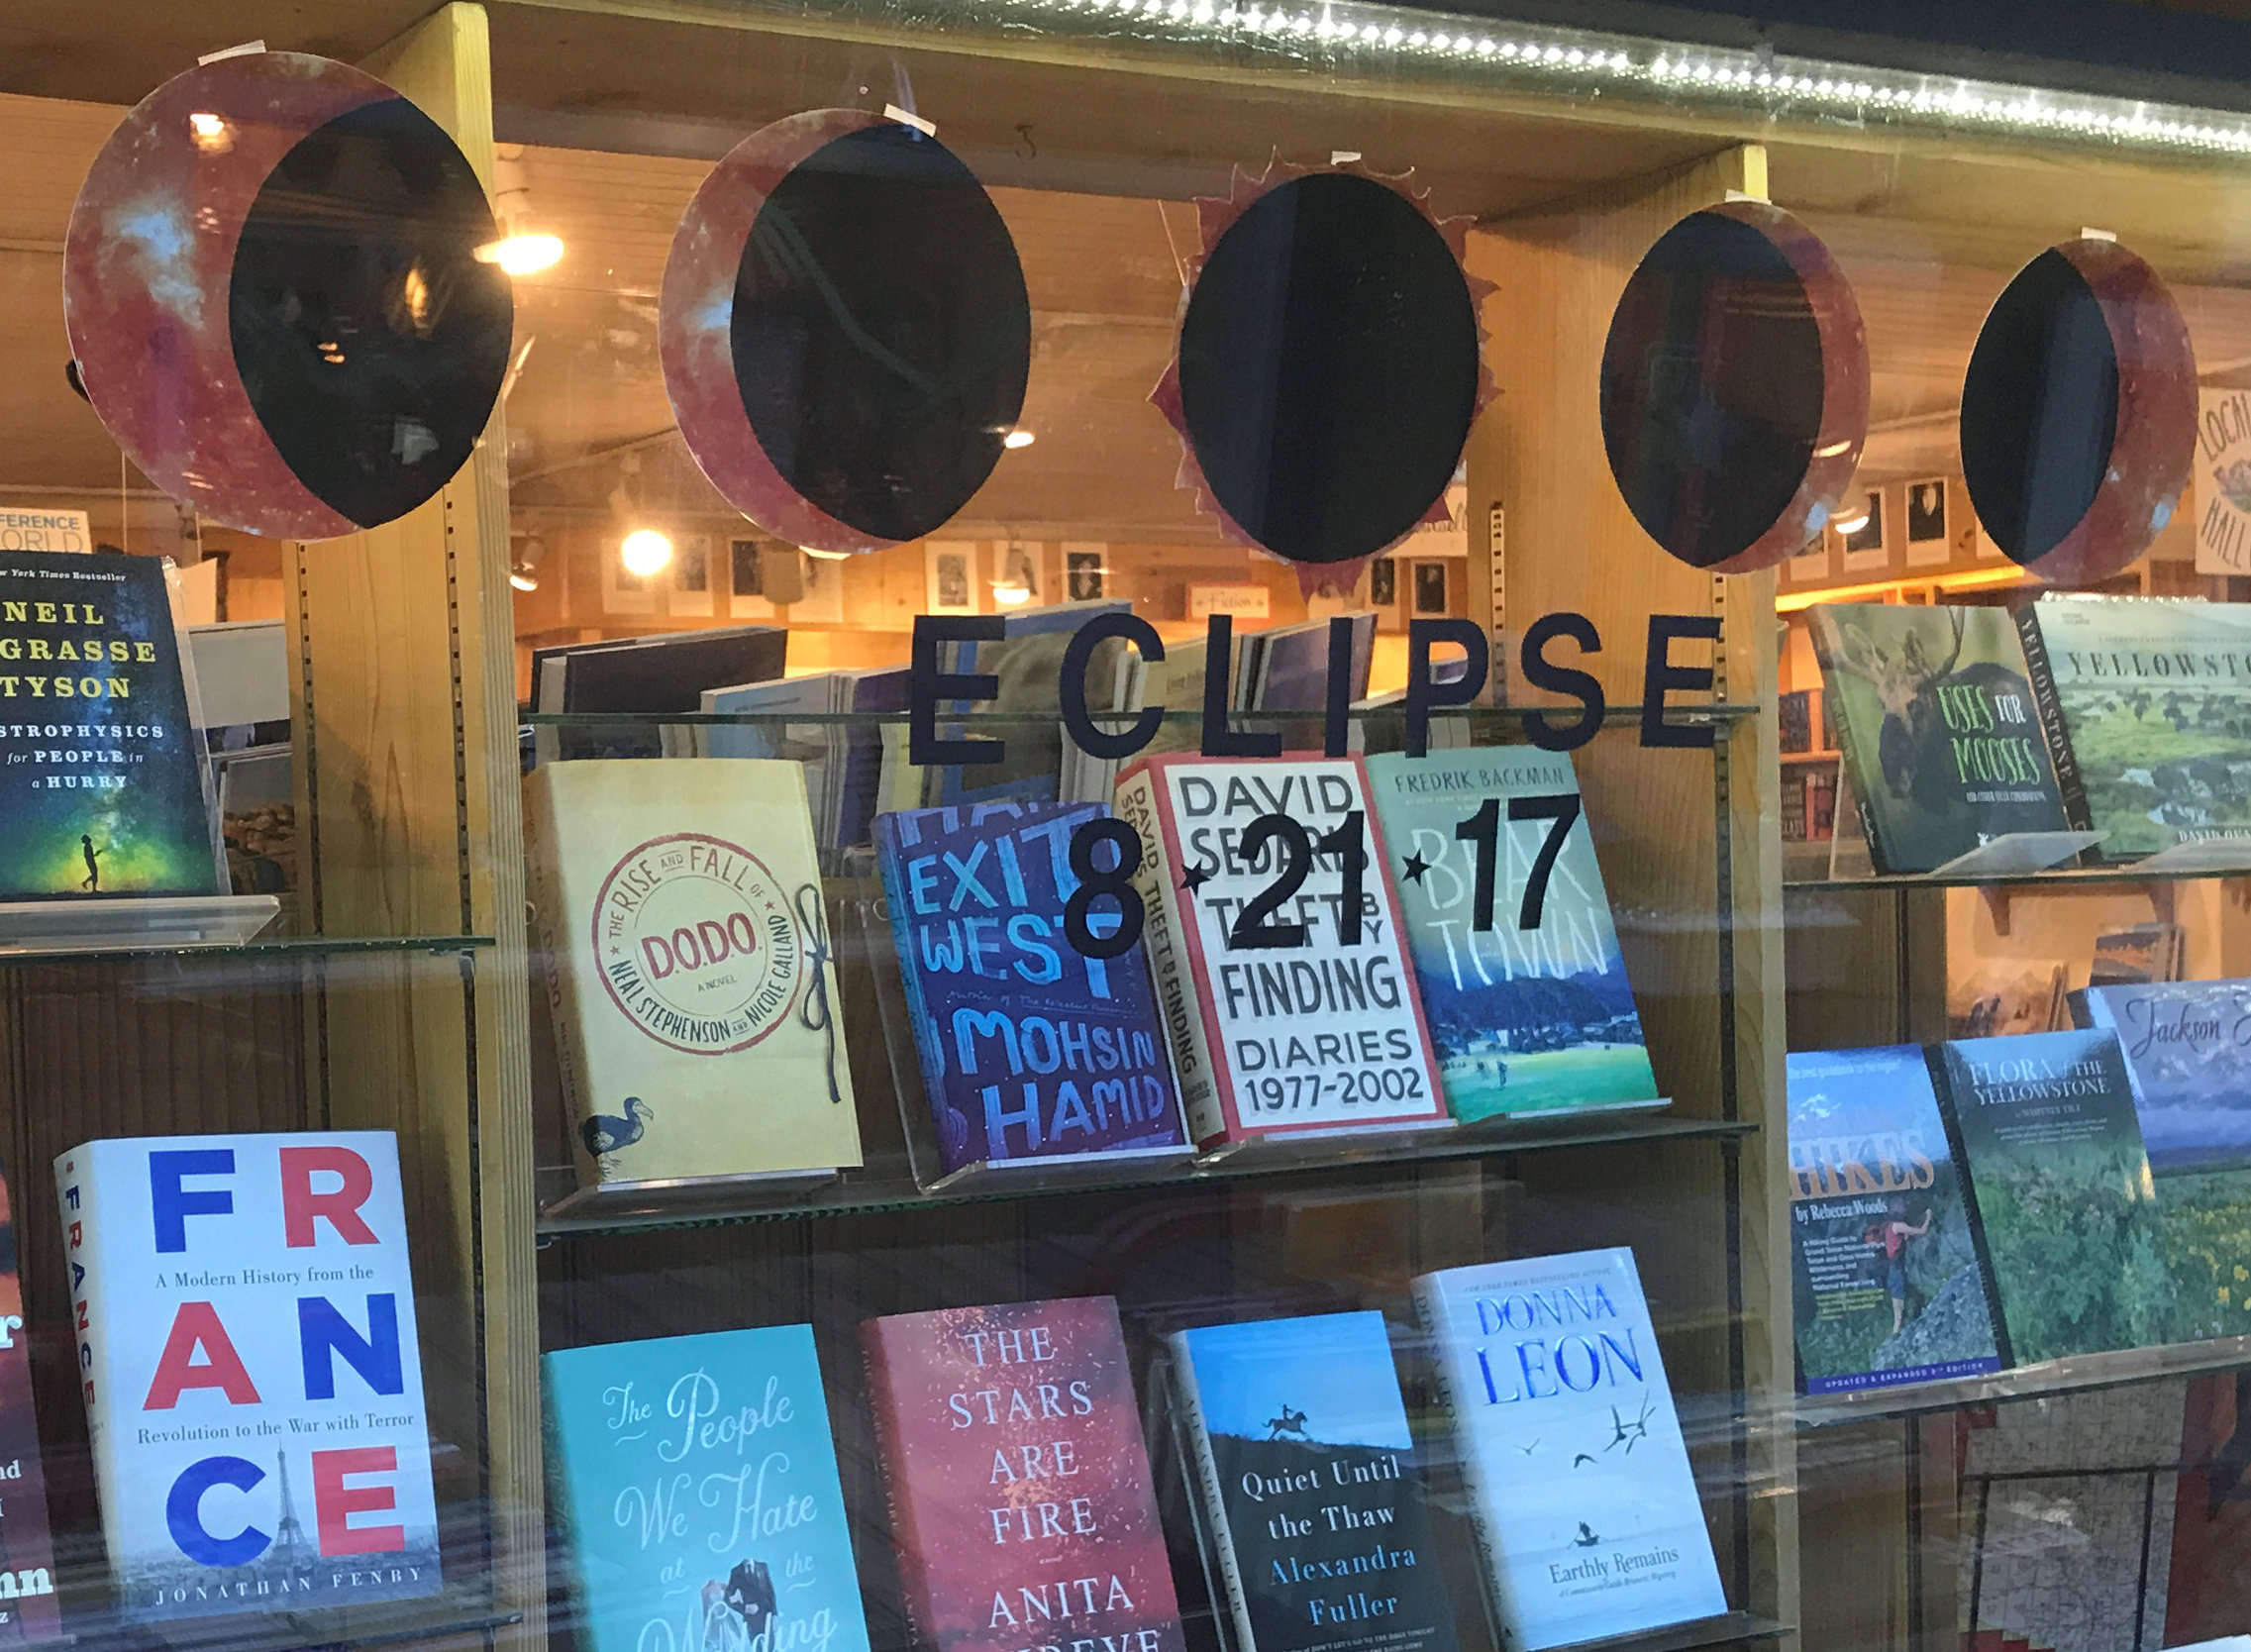 Books and a cardboard cutout representation of the moon eclipsing the sun on August 21, 2017 are seen at a bookstore in Jackson, Wyoming, U.S. July 12, 2017. Picture taken July 12, 2017. REUTERS/Ann Saphir